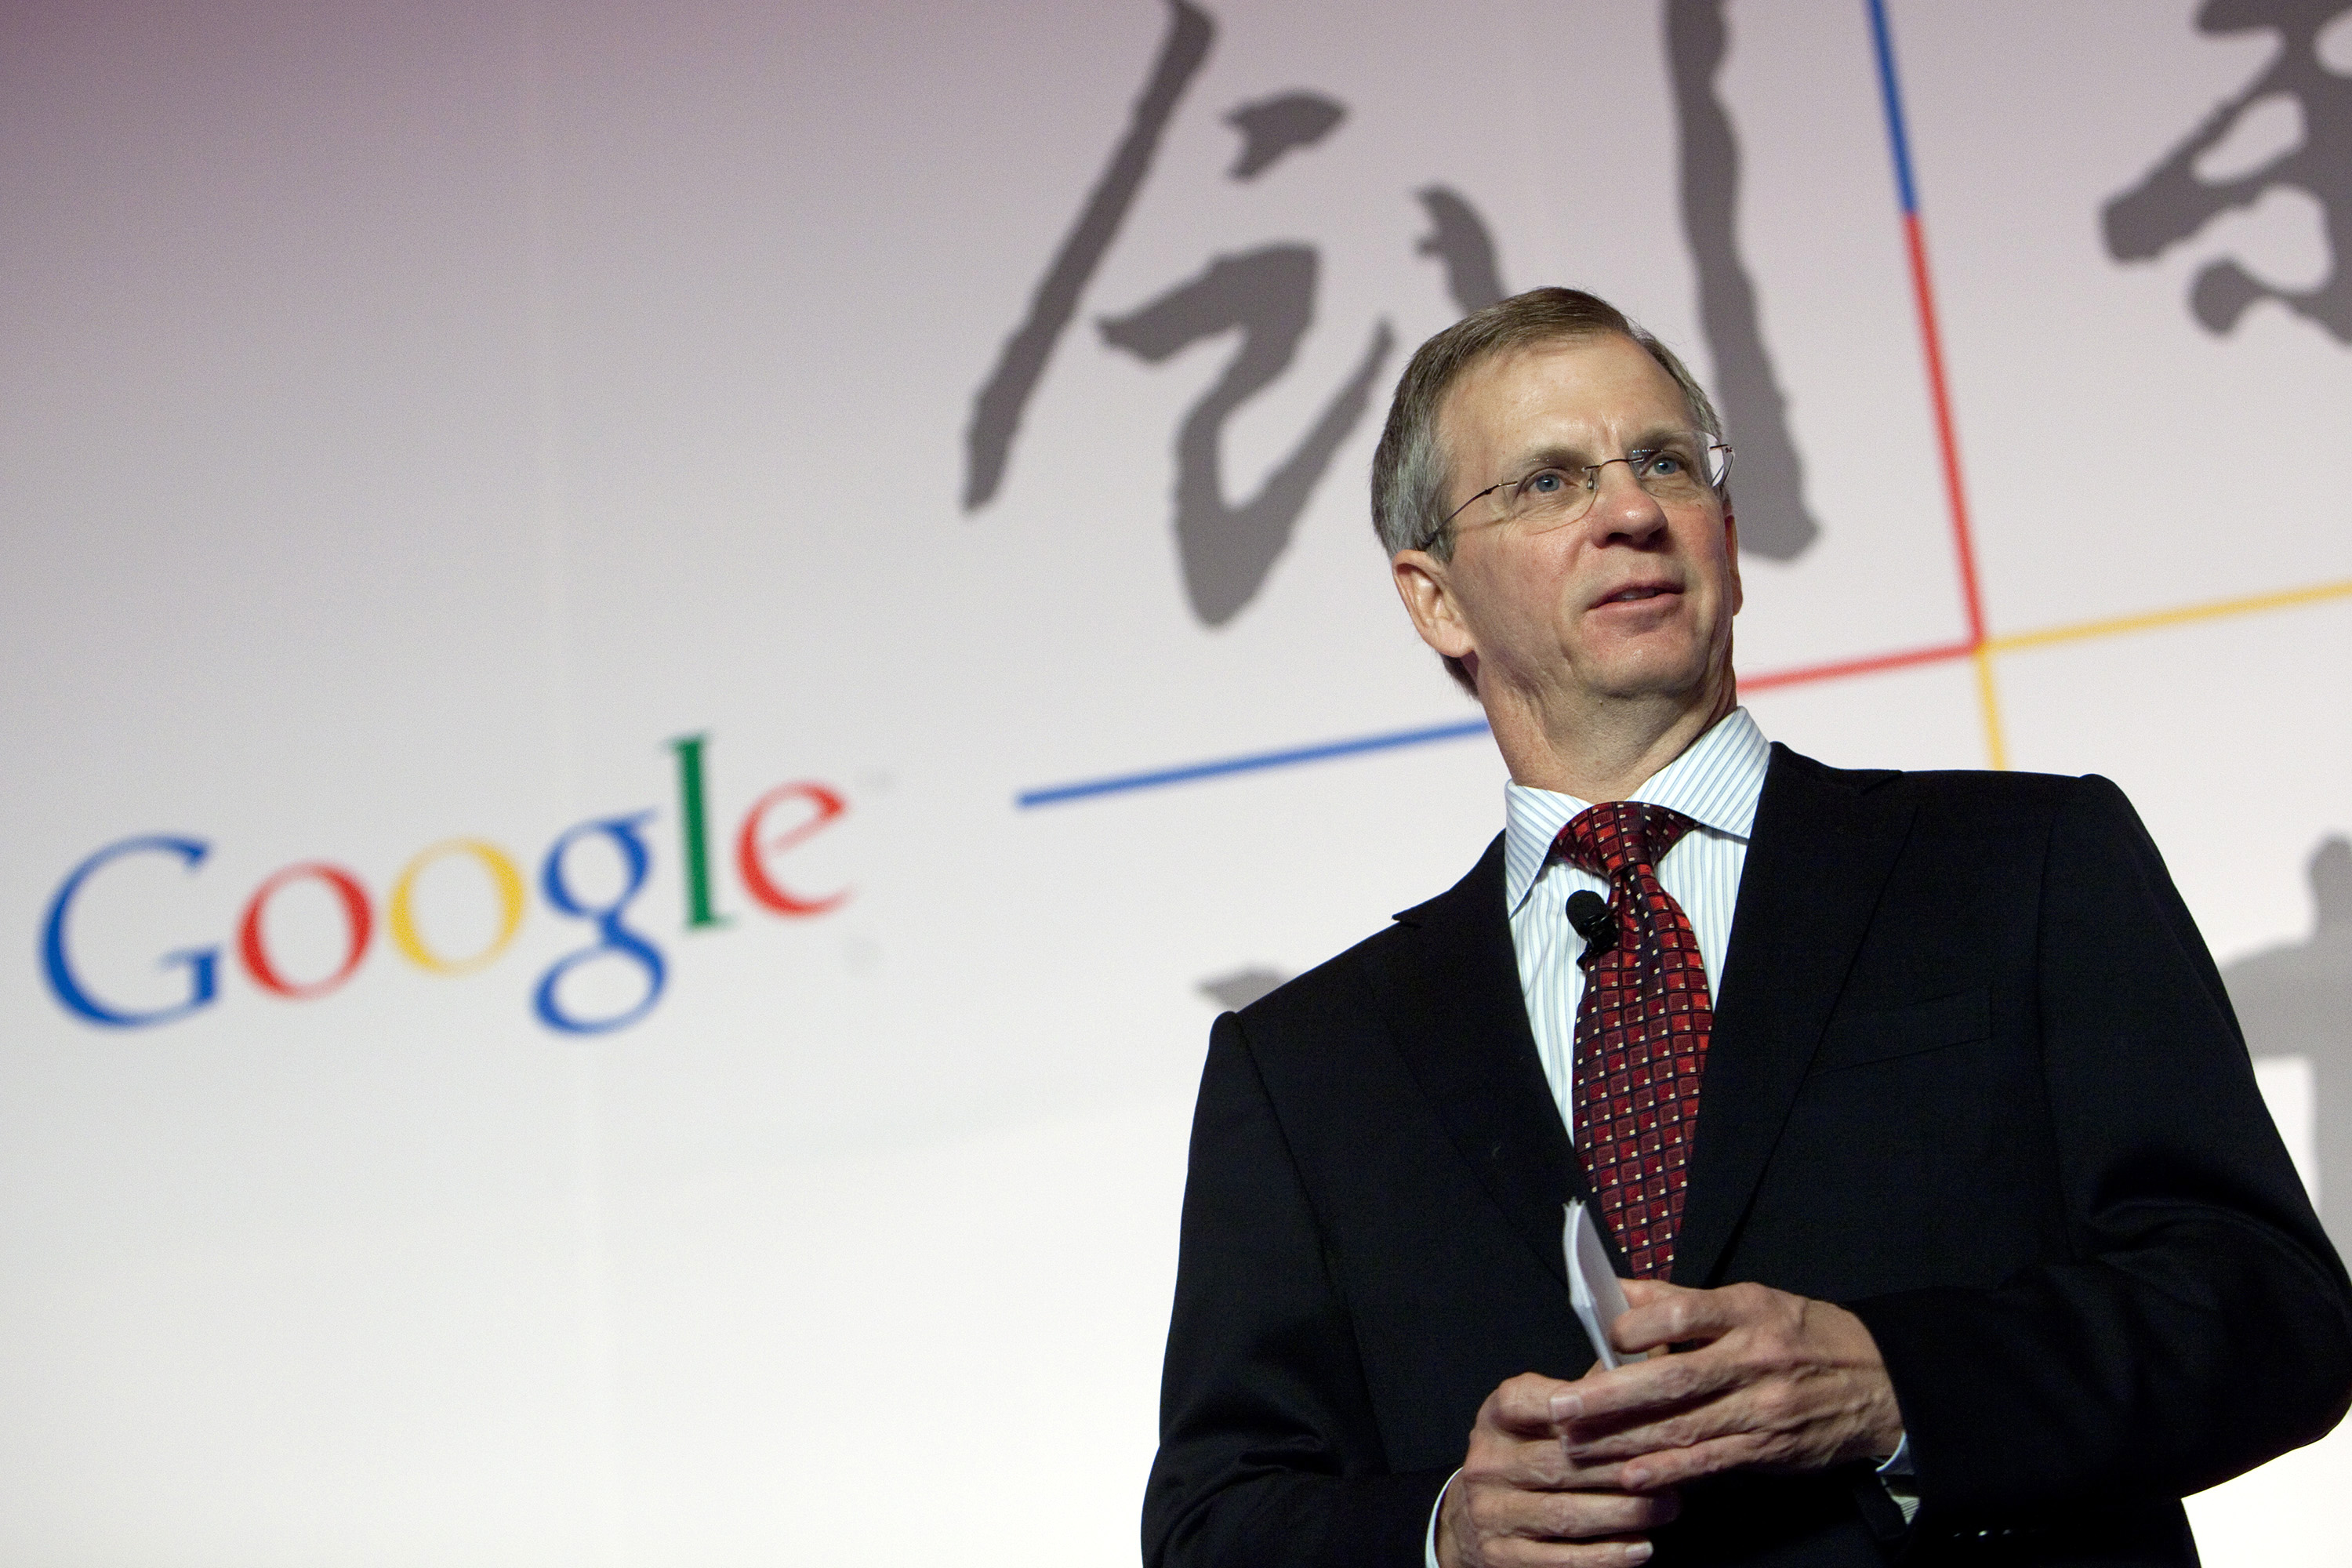 Robert Alan Eustace, Google Inc.'s senior vice president for engineering, speaks at the Google Innovation Forum in Beijing, China, on Tuesday, Dec. 7, 2010.